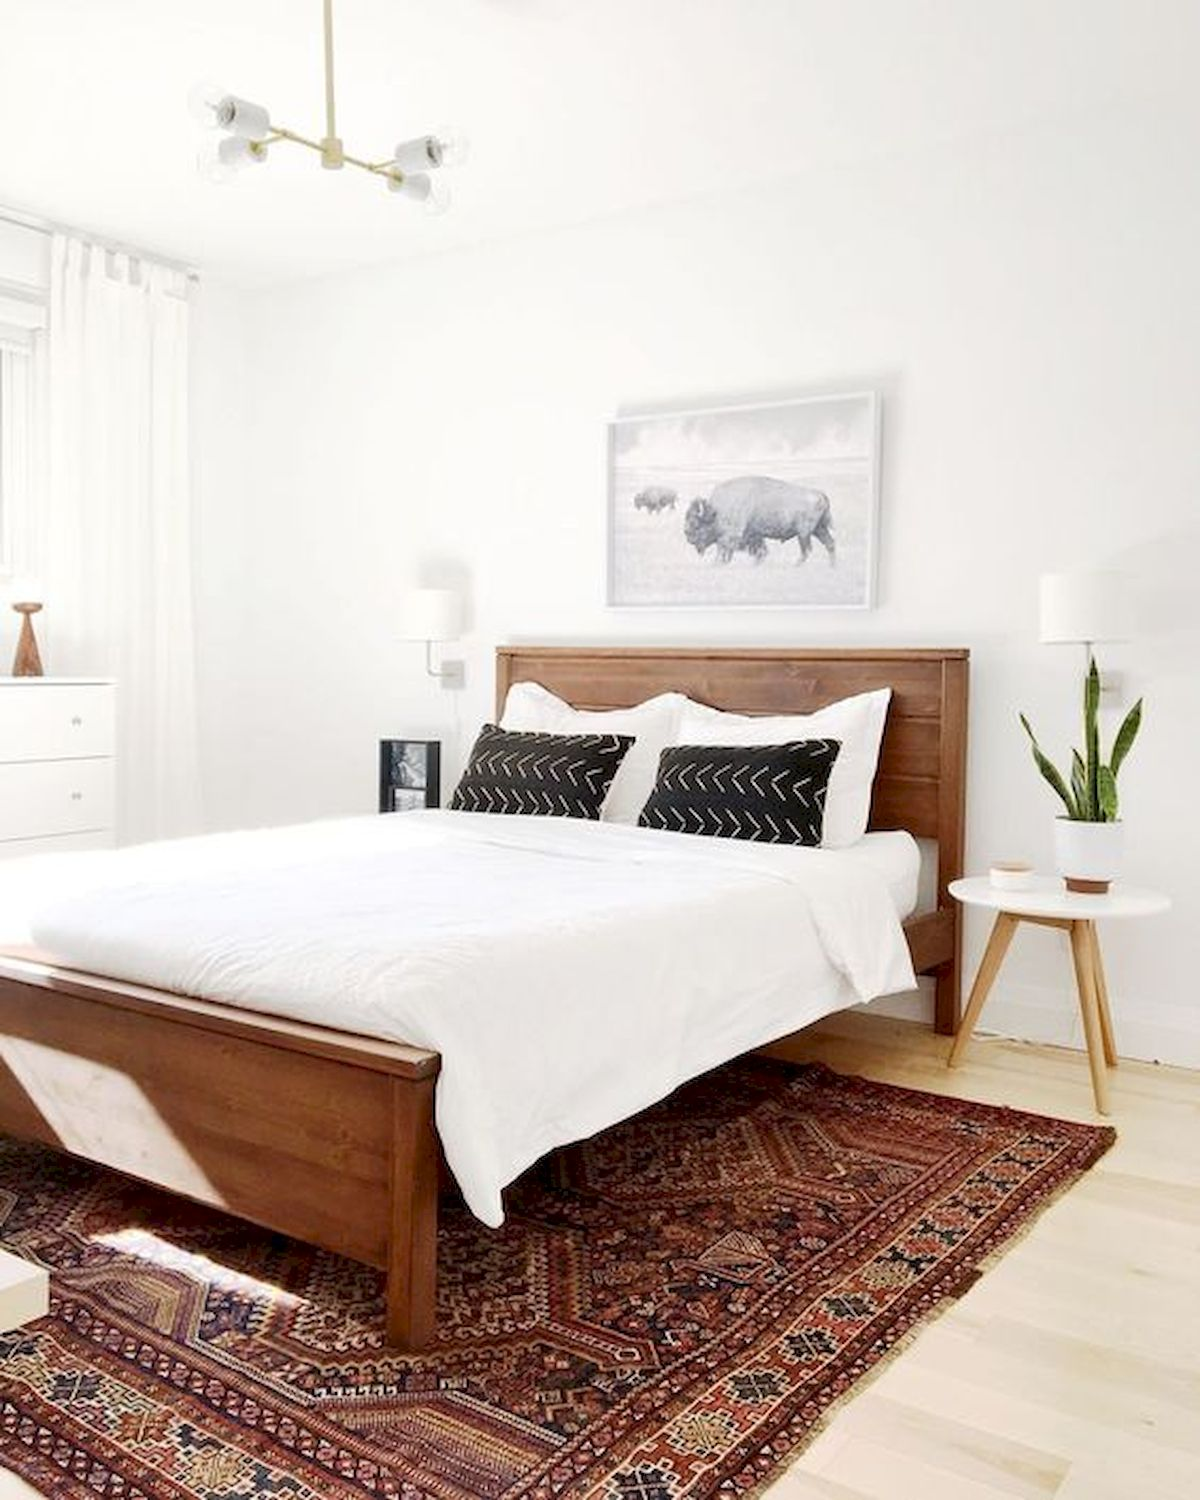 44 Awesome White Master Bedroom Design and Decor Ideas For Any Home Design (9)